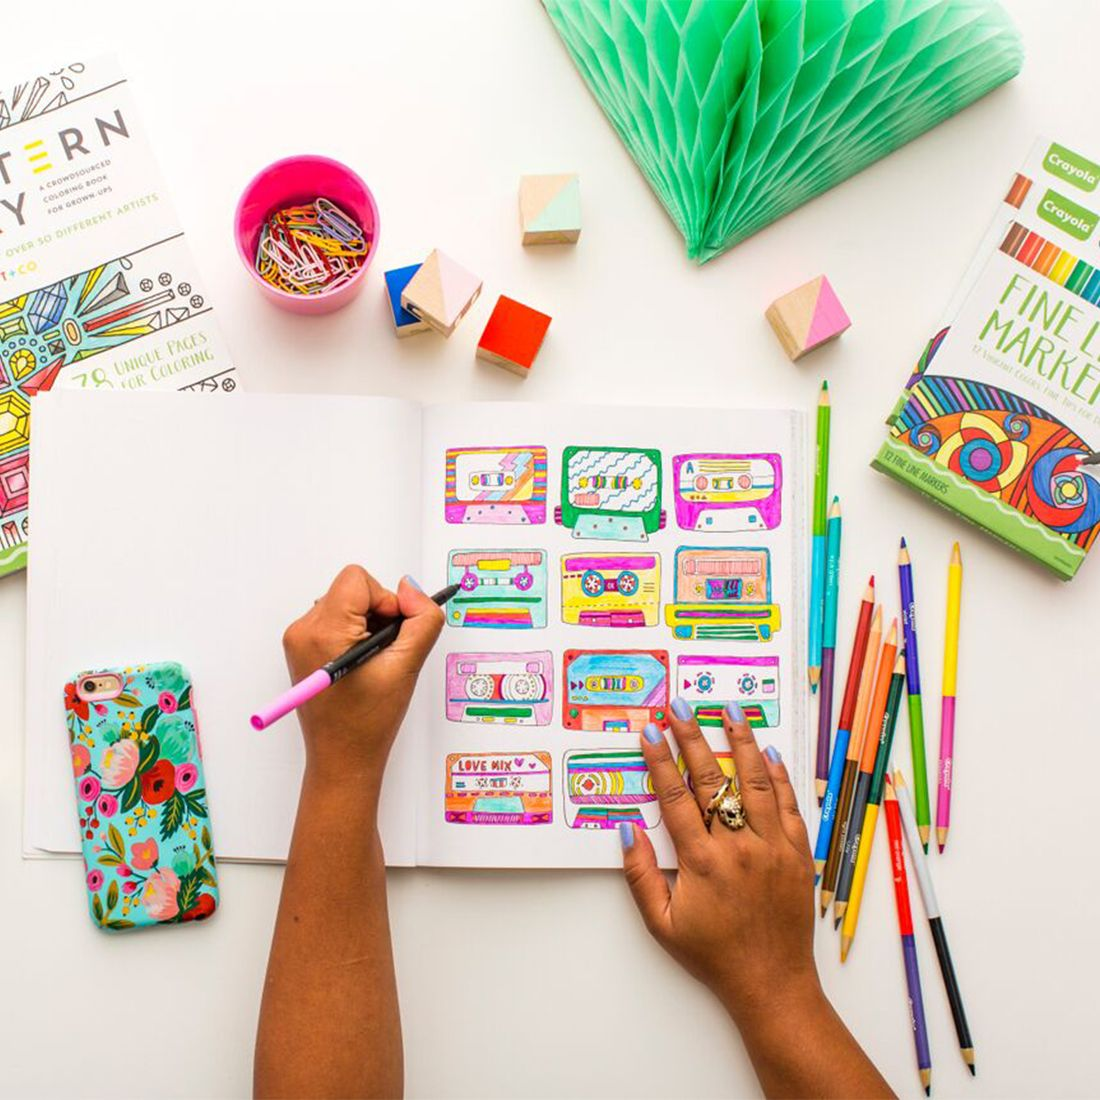 Brit + Co. teamed up with Crayola and Target to bring Y-O-U ...